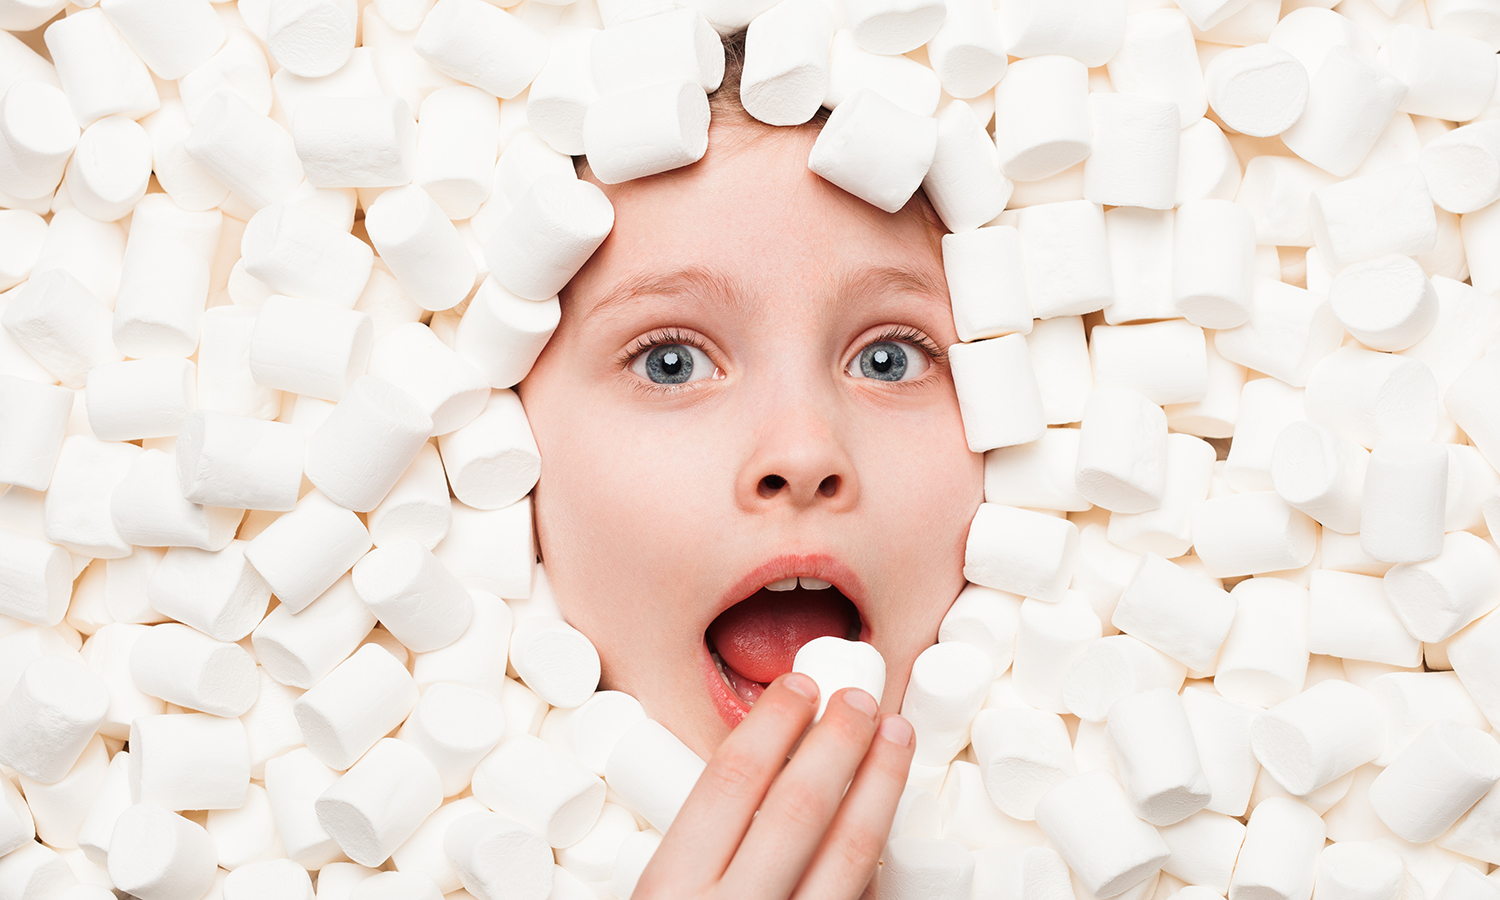 Child surrounded by marshmallows about to eat a marshmallow